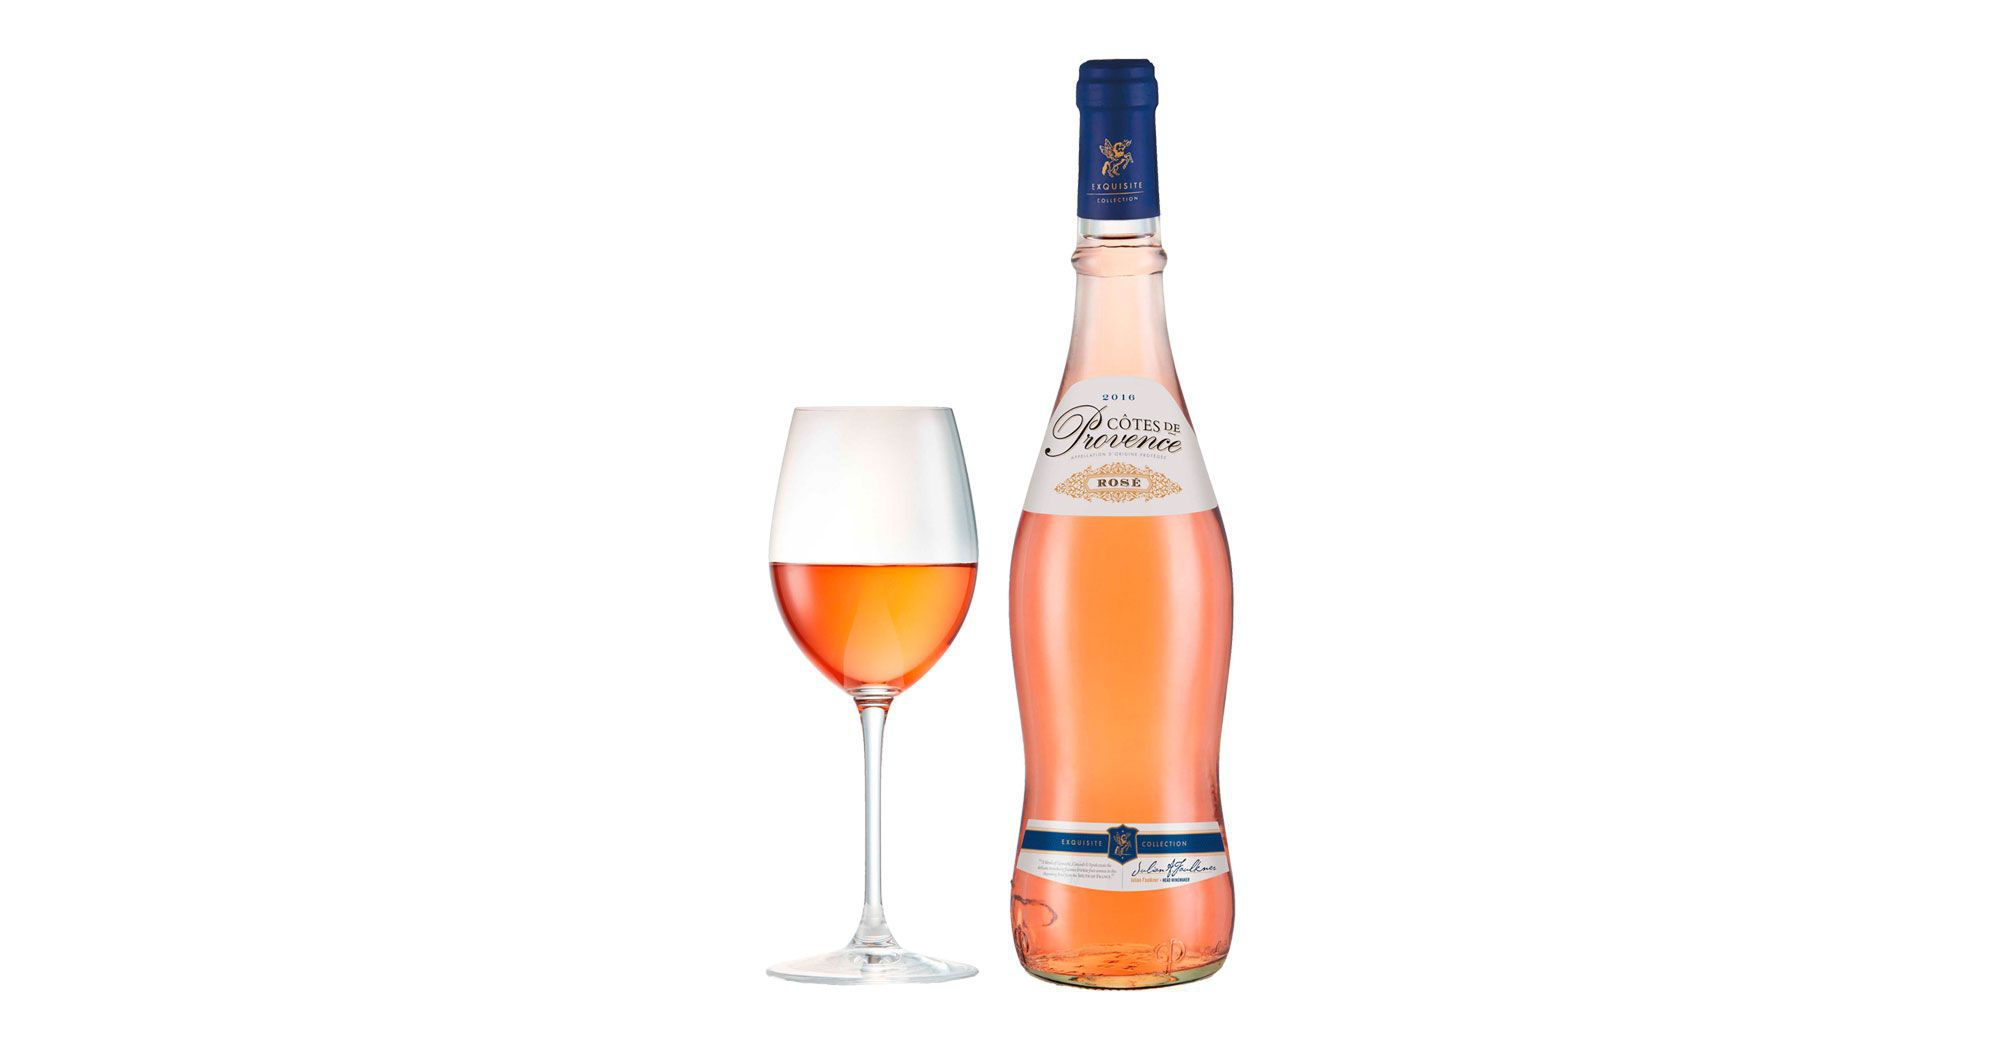 Aldi's $8 Award-Winning Rosé Is In the US Now